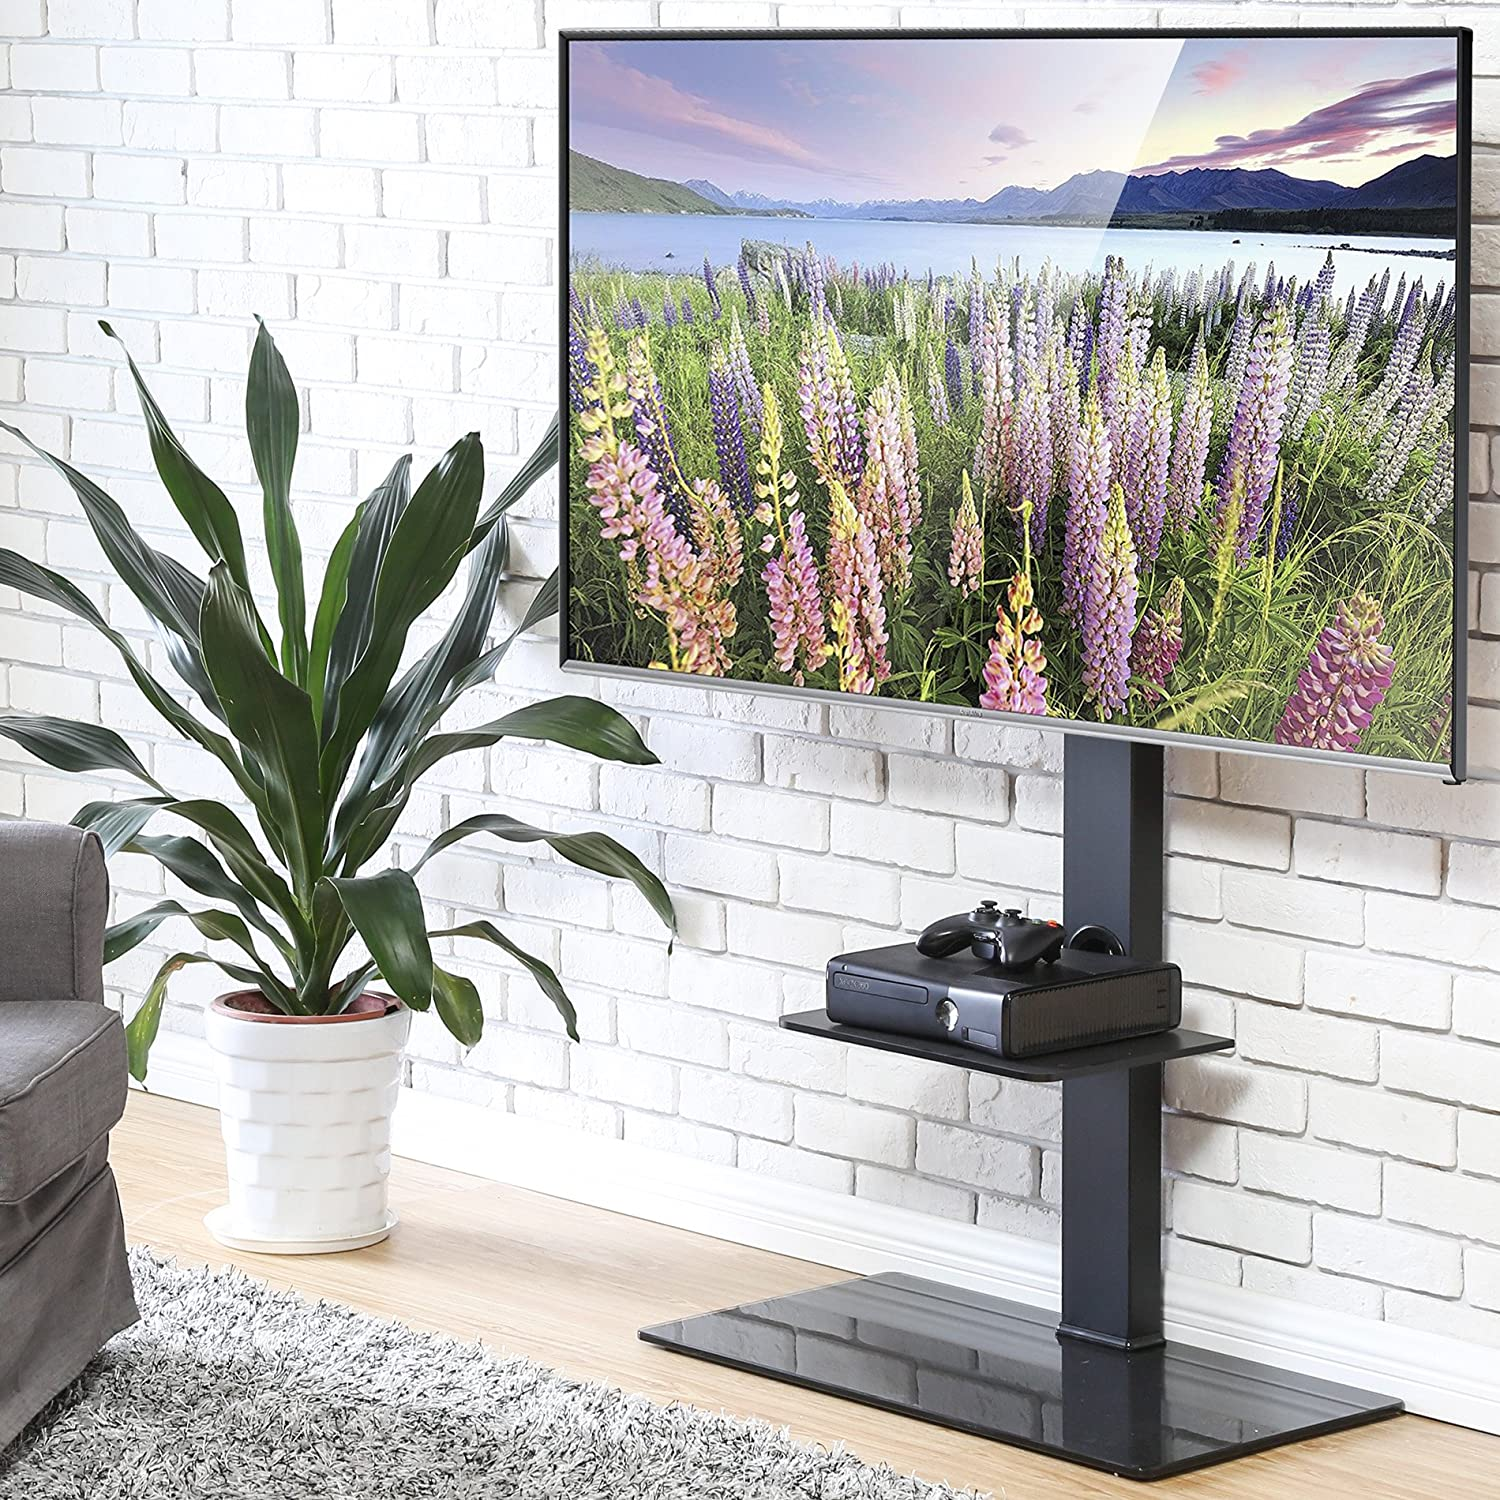 FITUEYES Cantilever TV Stand with Swivel Bracket for 32-65 inch LCD LED TT307001MB TT307001MBUK